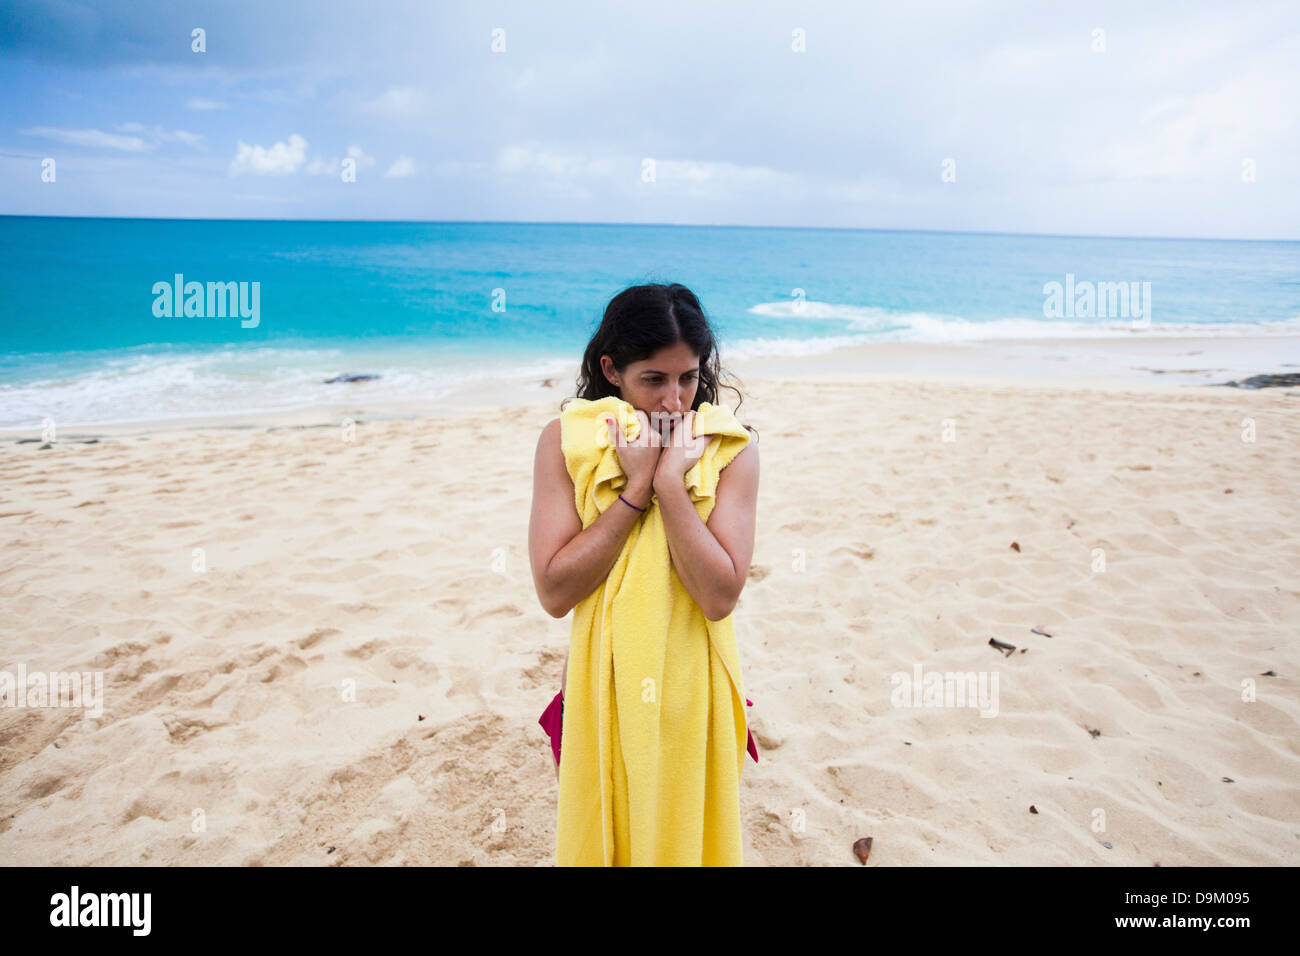 Woman holding yellow towel on beach, St Maarten, Netherlands - Stock Image